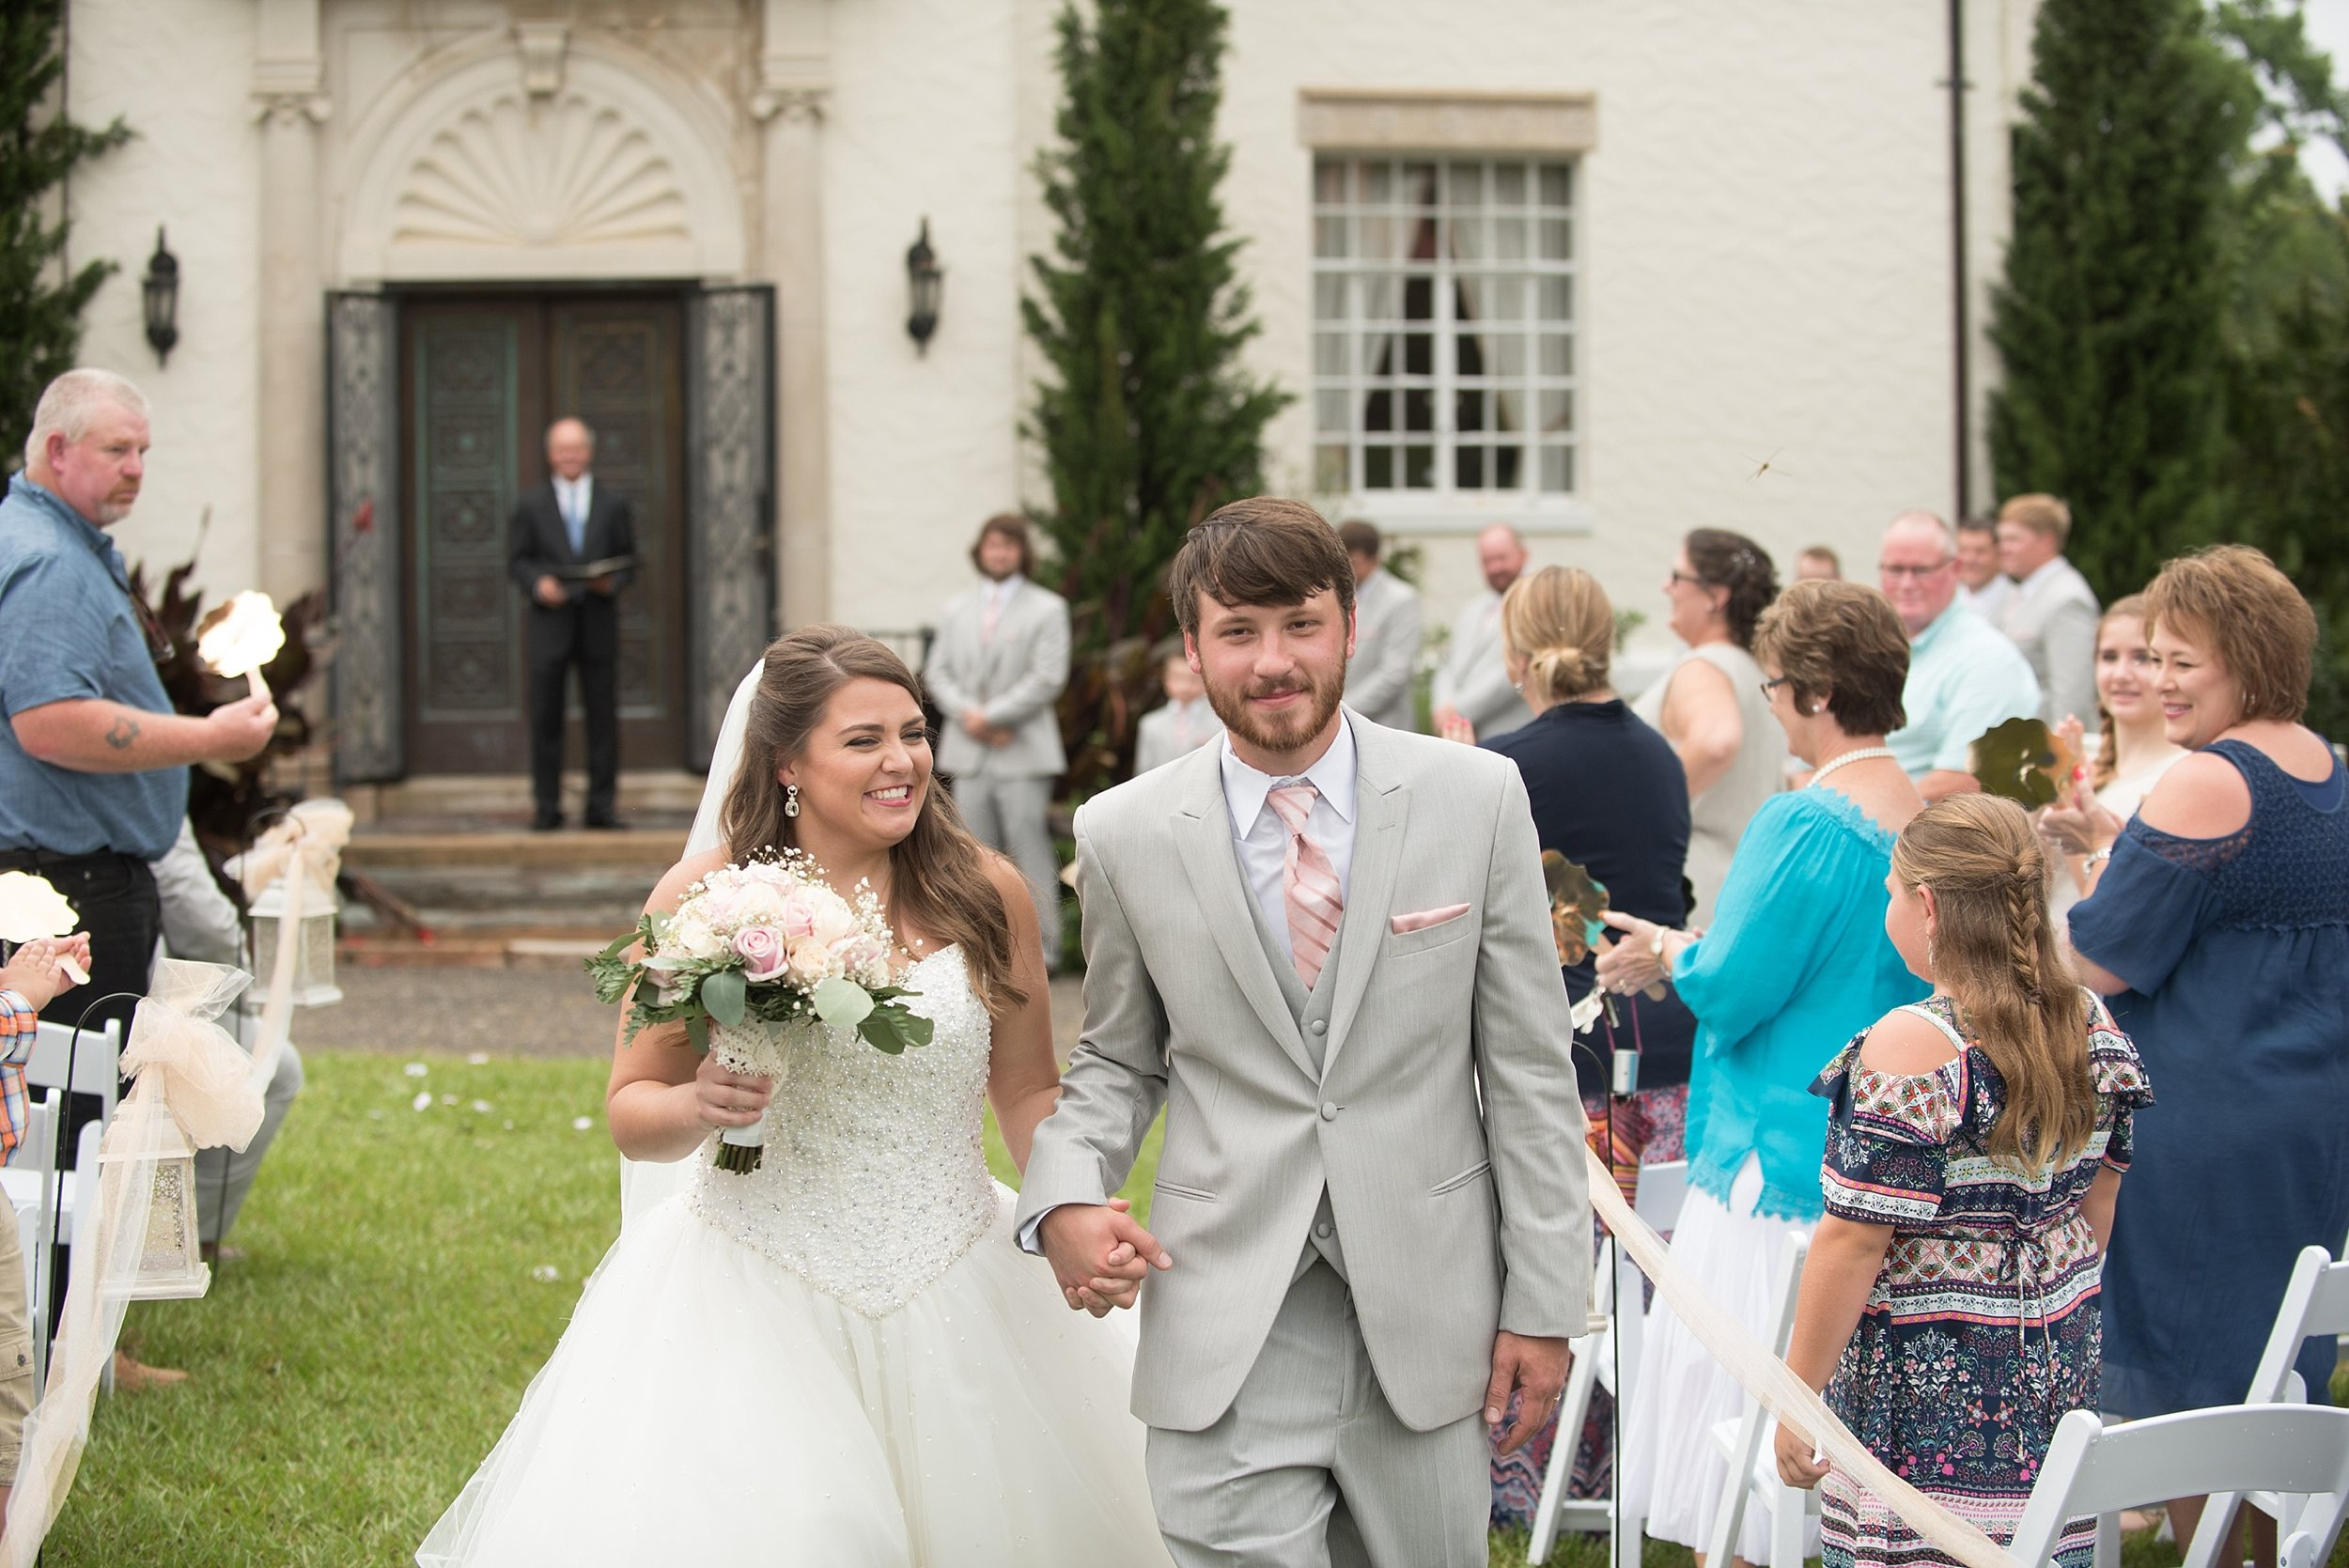 The newly married couple smiles at their guests as they walk down the aisle